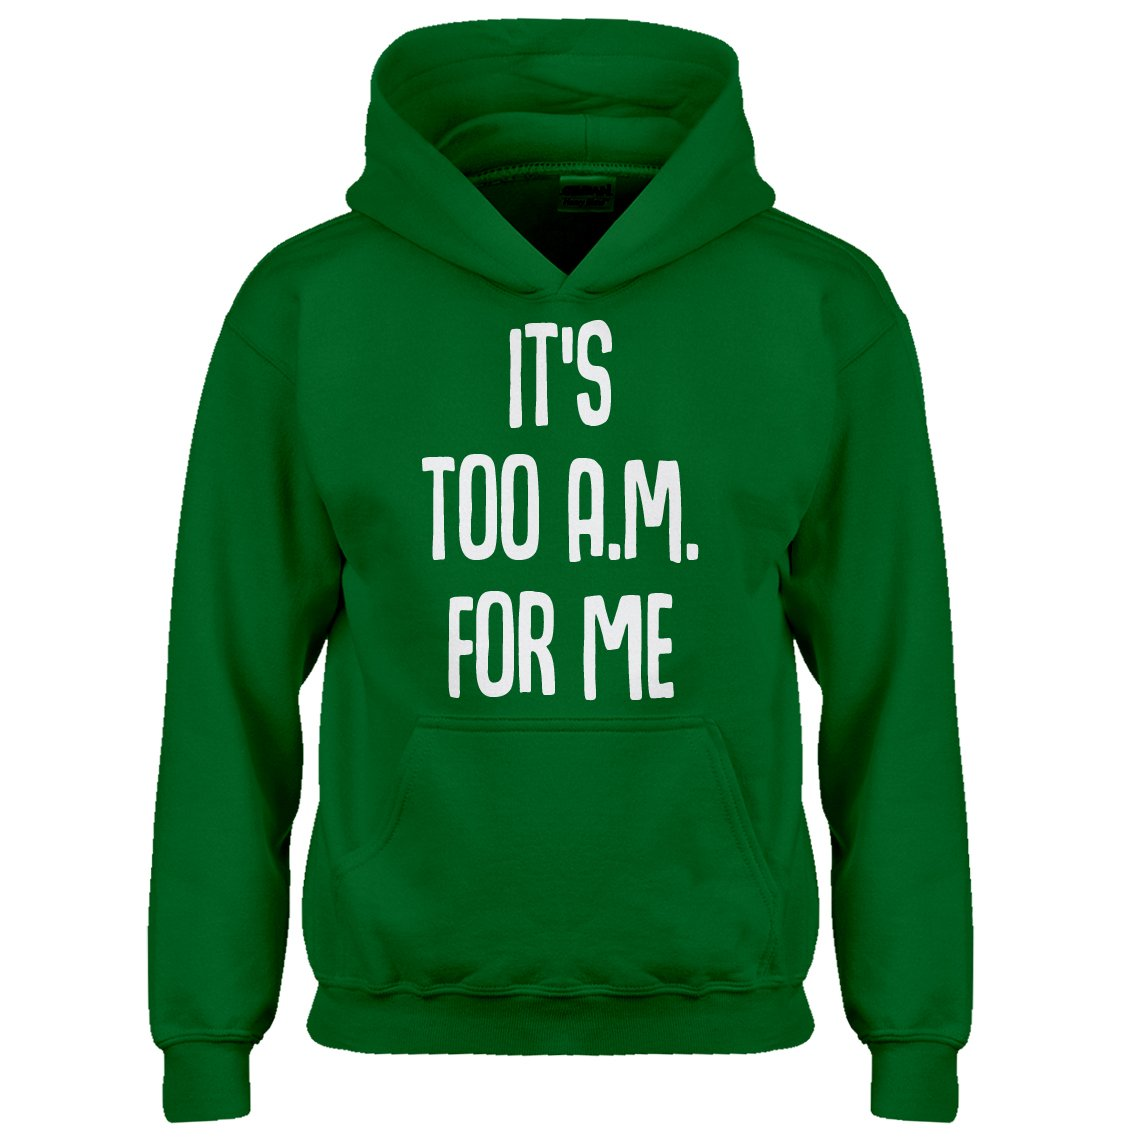 Indica Plateau Youth It's Too A.M. for me Kids Hoodie 3486-Z